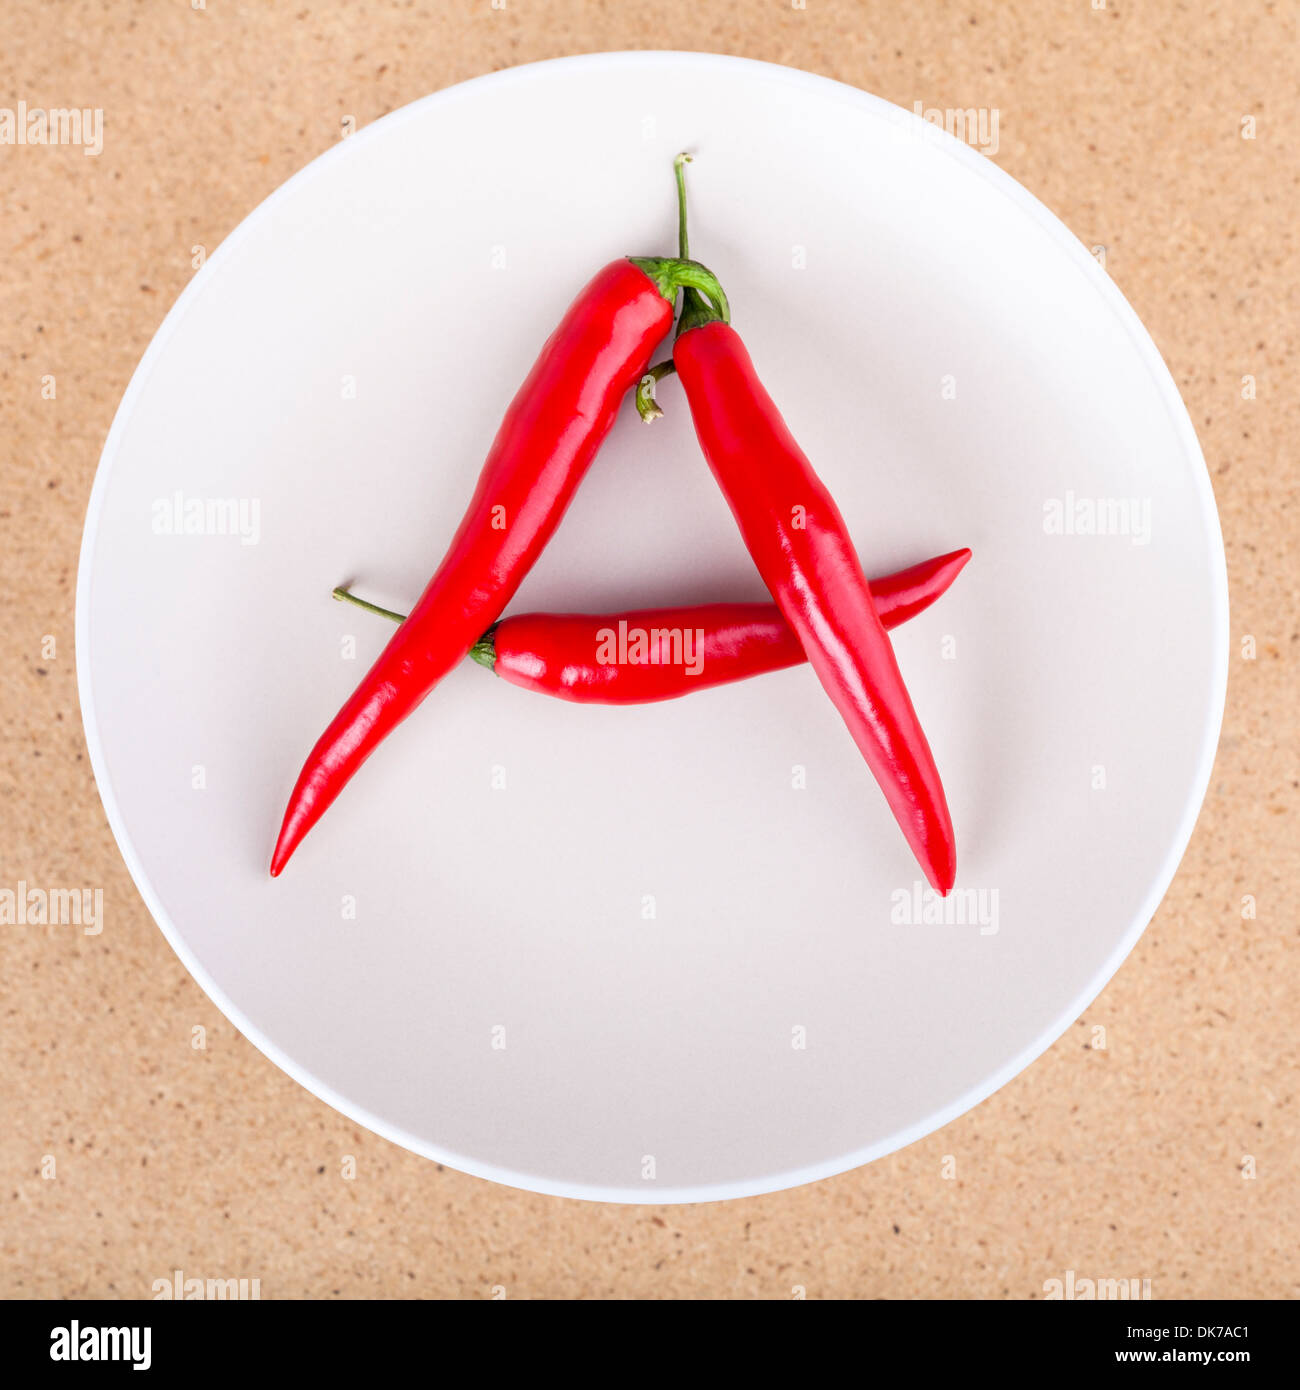 Fresh raw red hot chili peppers on plate arranged in A letter shape. - Stock Image